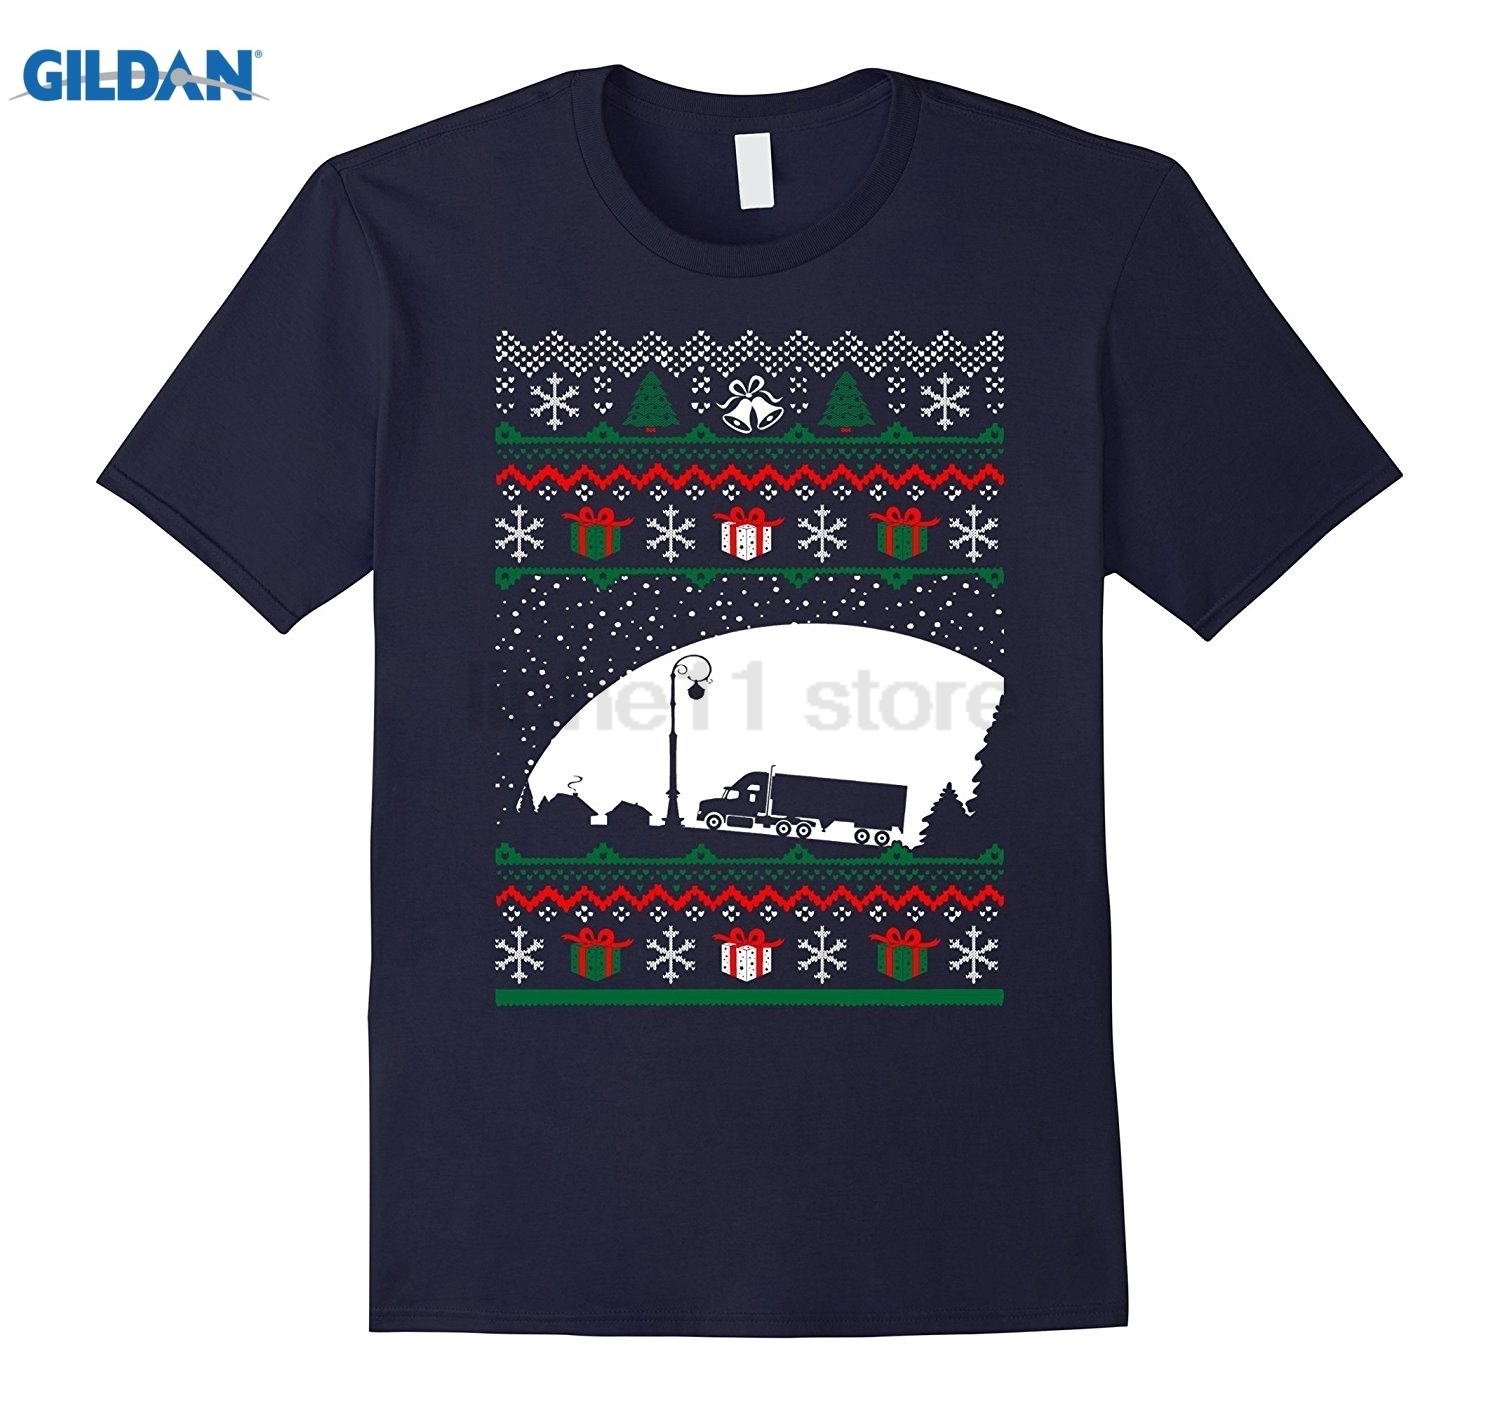 GILDAN Christmas Ugly Sweater Truck Driver Profession Tshirt Womens T-shirt ...